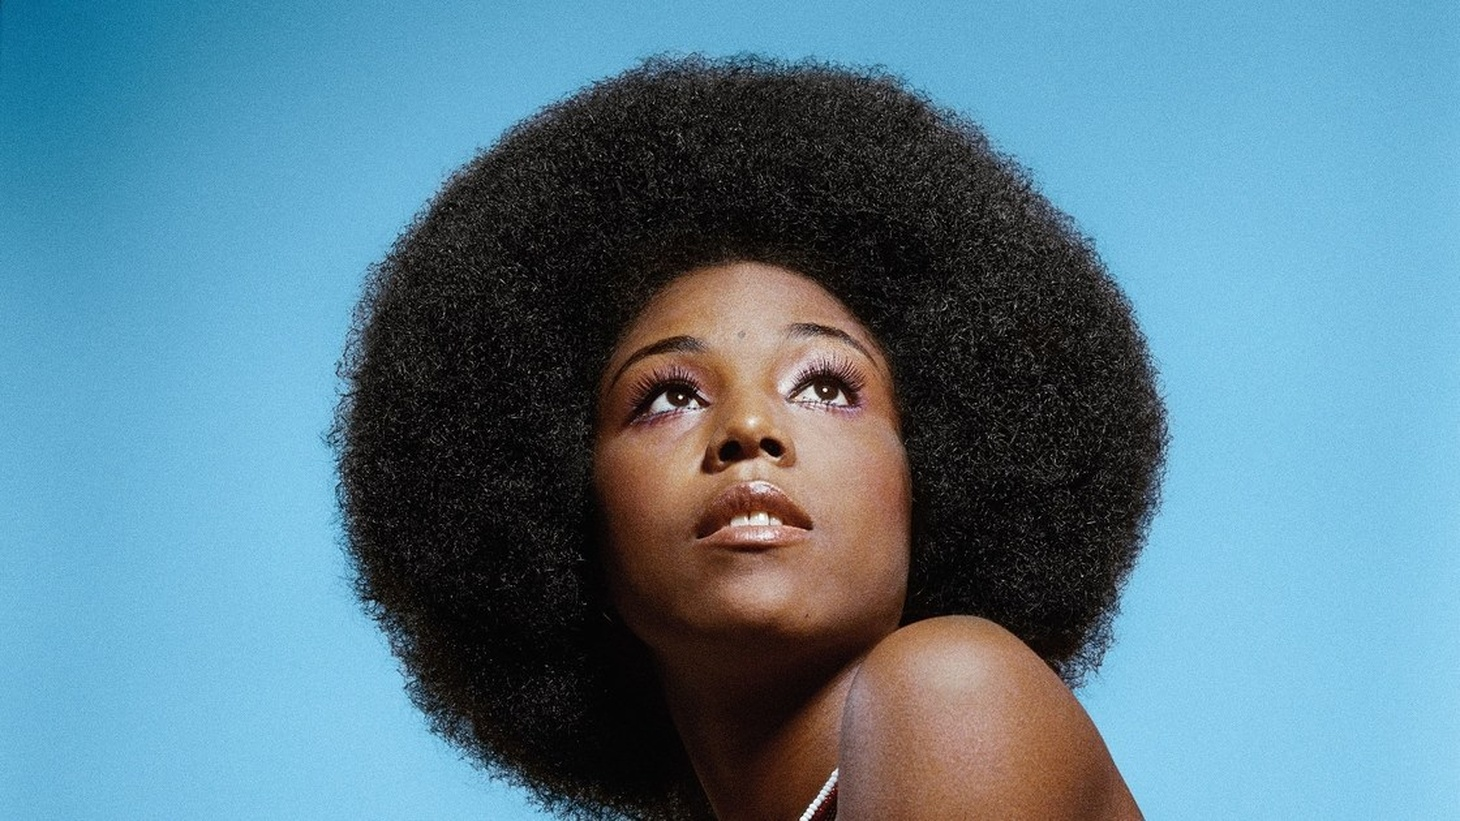 Brooklyn-born photographer Kwame Brathwaite created a visual language for black empowerment in the 1960s. His photographs of the Grandassa Models helped lead the Black is Beautiful revolution.